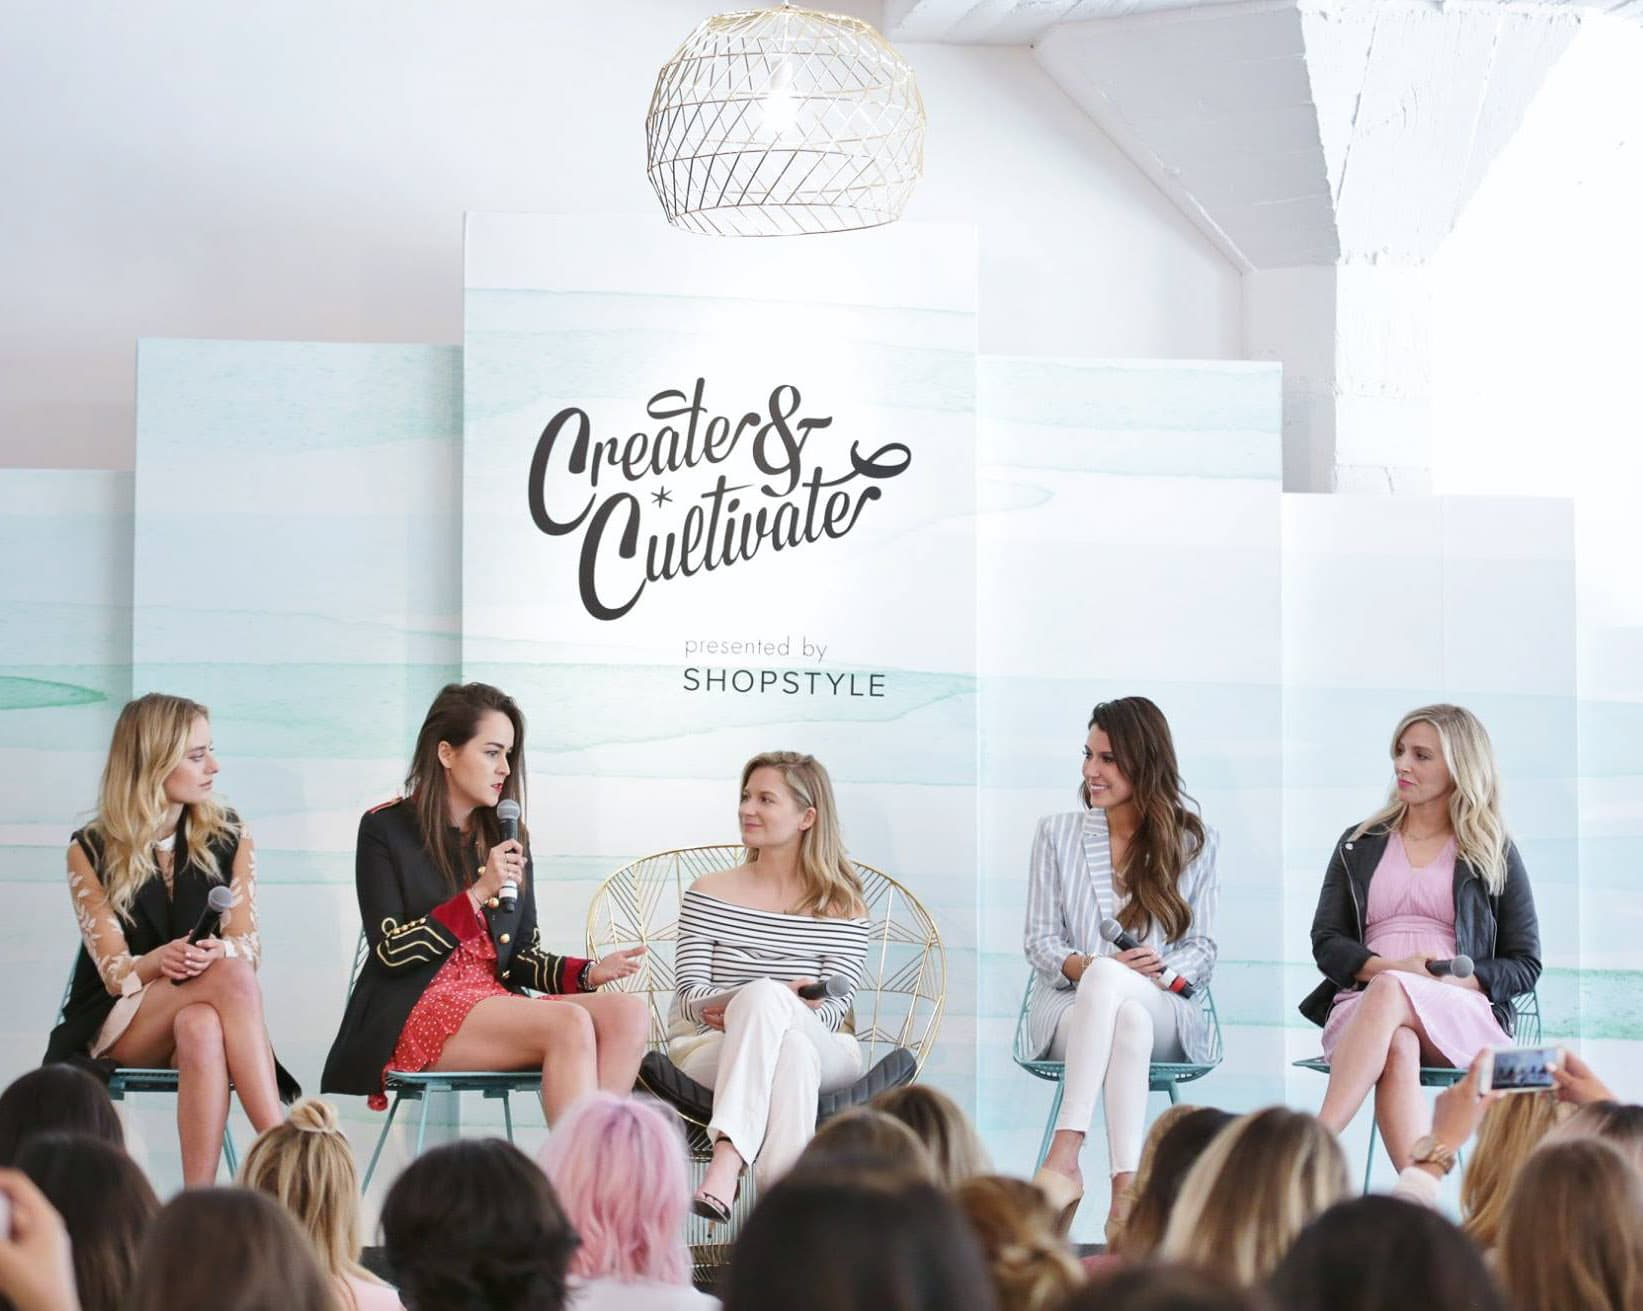 Sonya Esman from Class Is Internal, Andy Torres from Style Scrapbook, Taylor Sterling from The Glitter Guide, and Christine Andrew from Hello Fashion Blog | Create + Cultivate Los Angeles 2016 Conference Recap + Review | Beauty and Style Blogger Ashley Brooke Nicholas